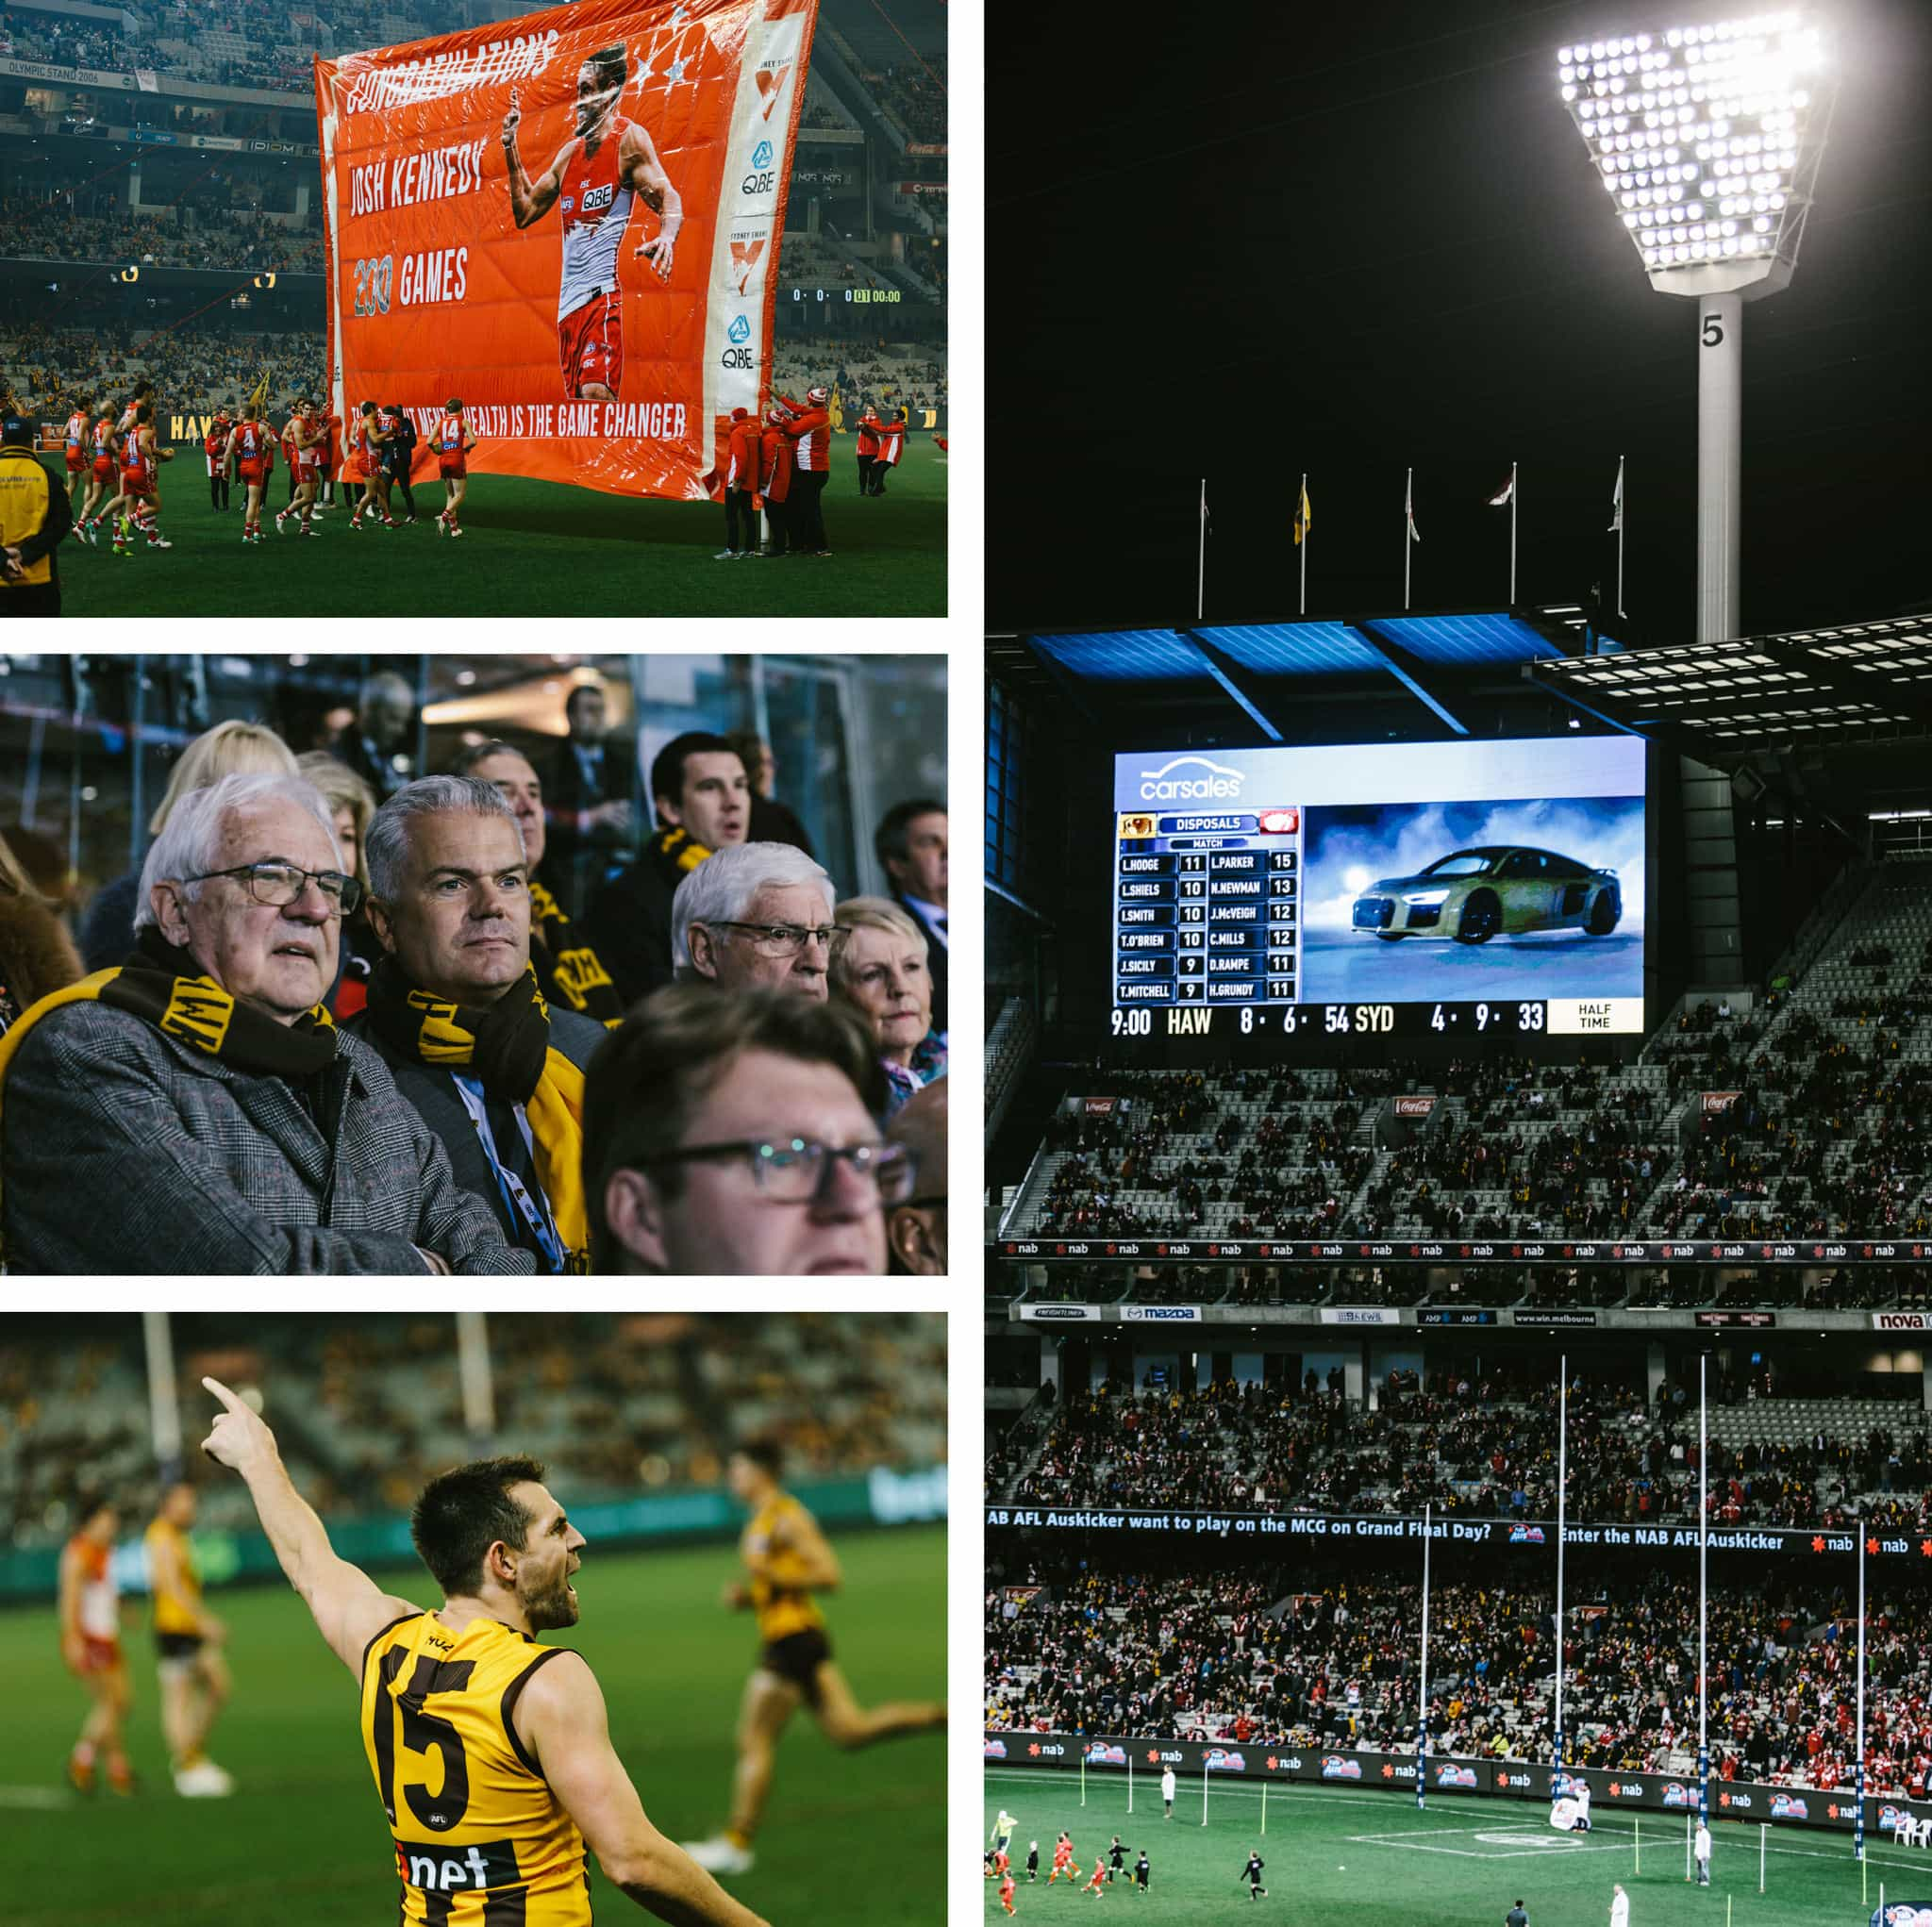 Sports Event Photographer - Creative and documenting in a photojournalistic way